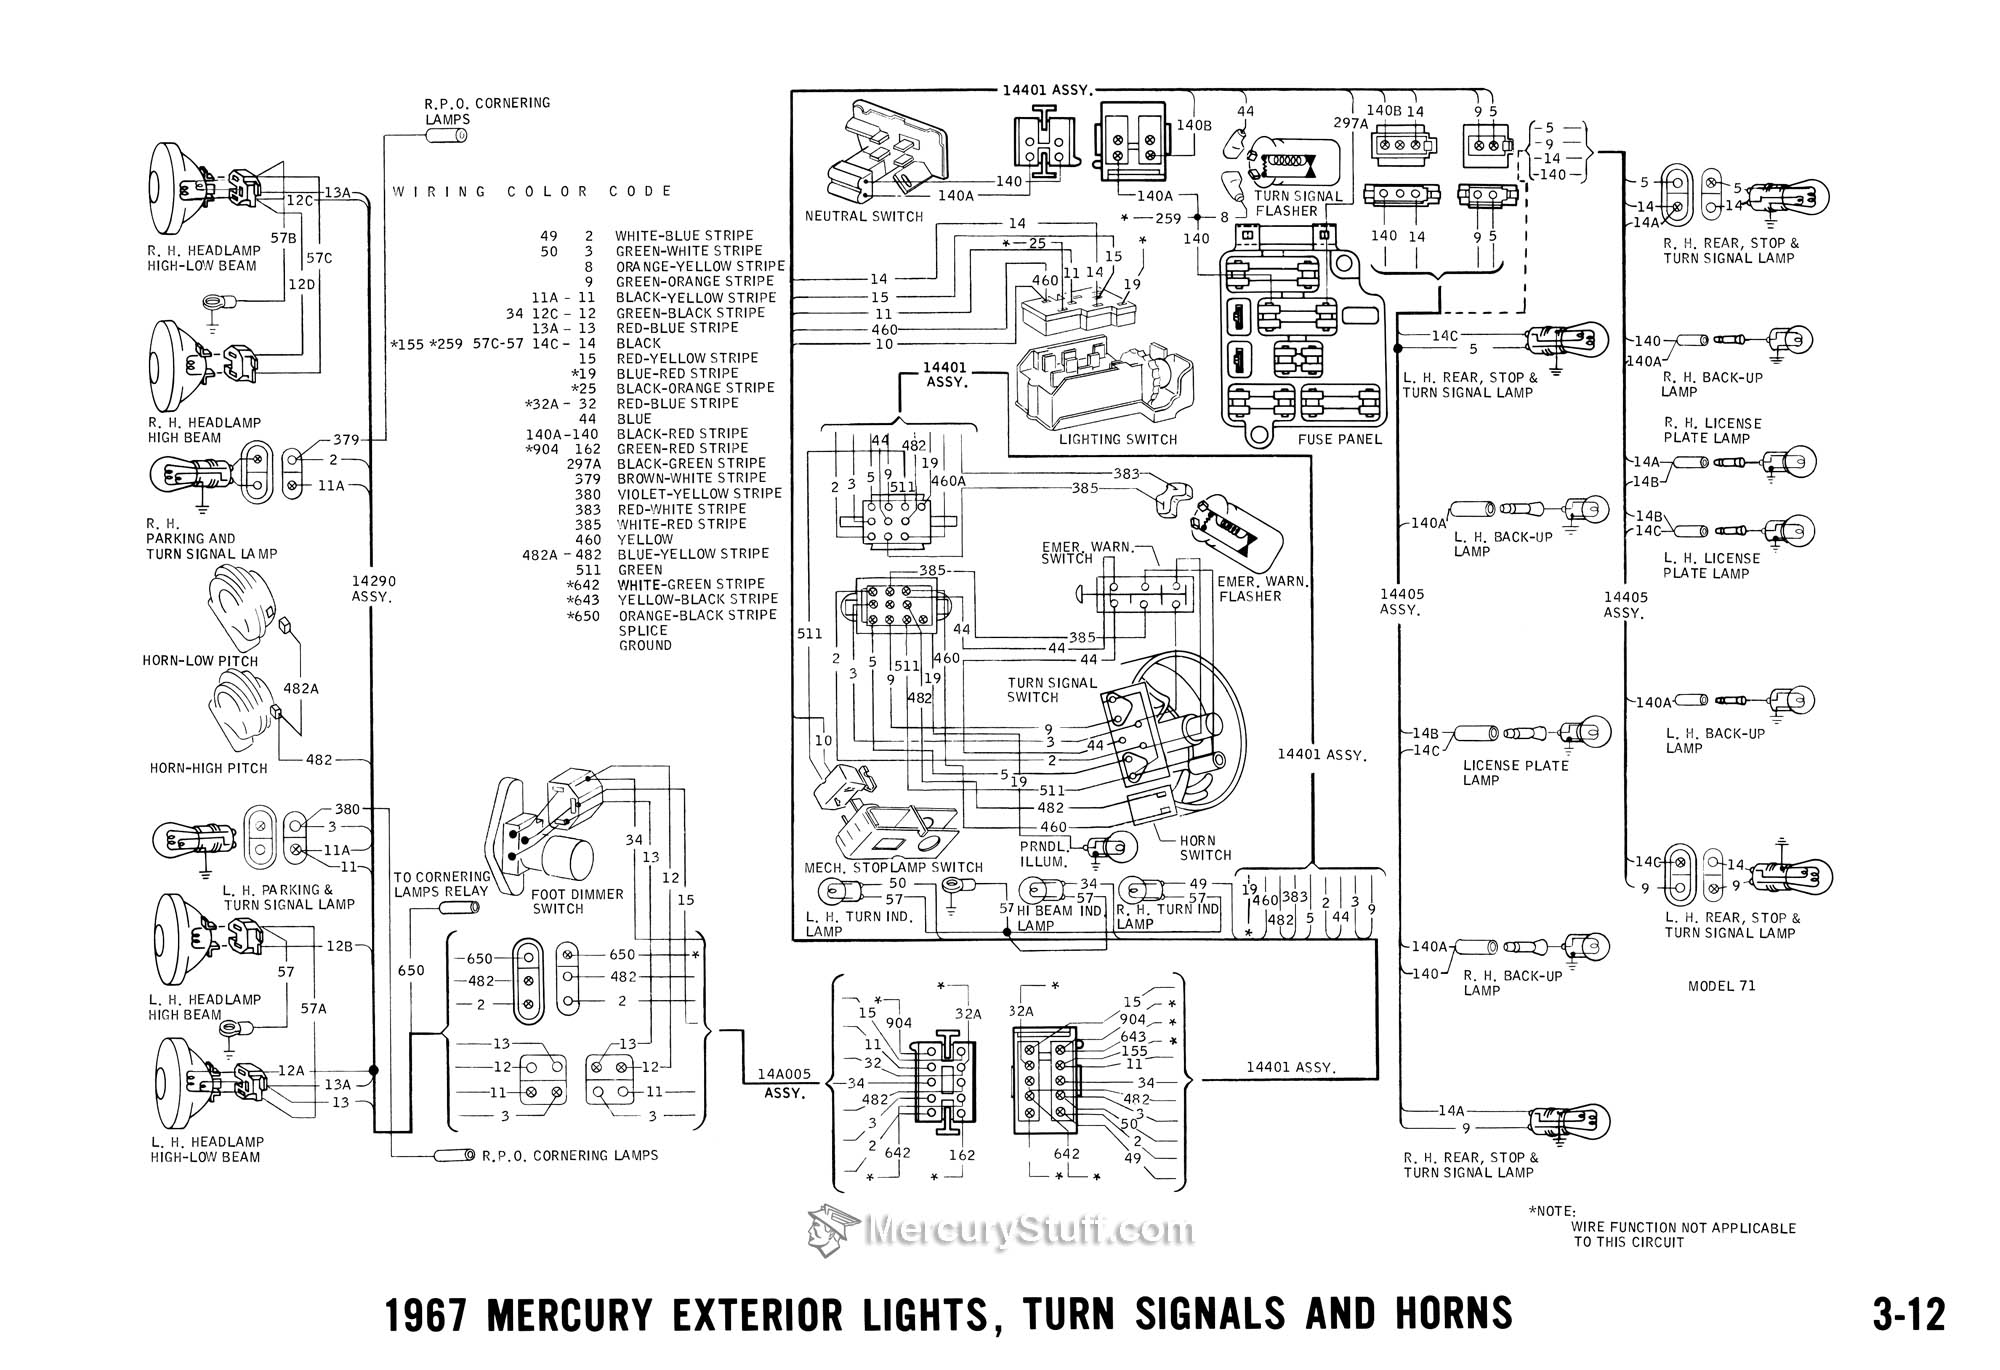 1967 mercury exterior lights turn signals horns wiring diagram 2006 mercury grand marquis the wiring diagram mercury 14 pin wiring harness diagram at sewacar.co